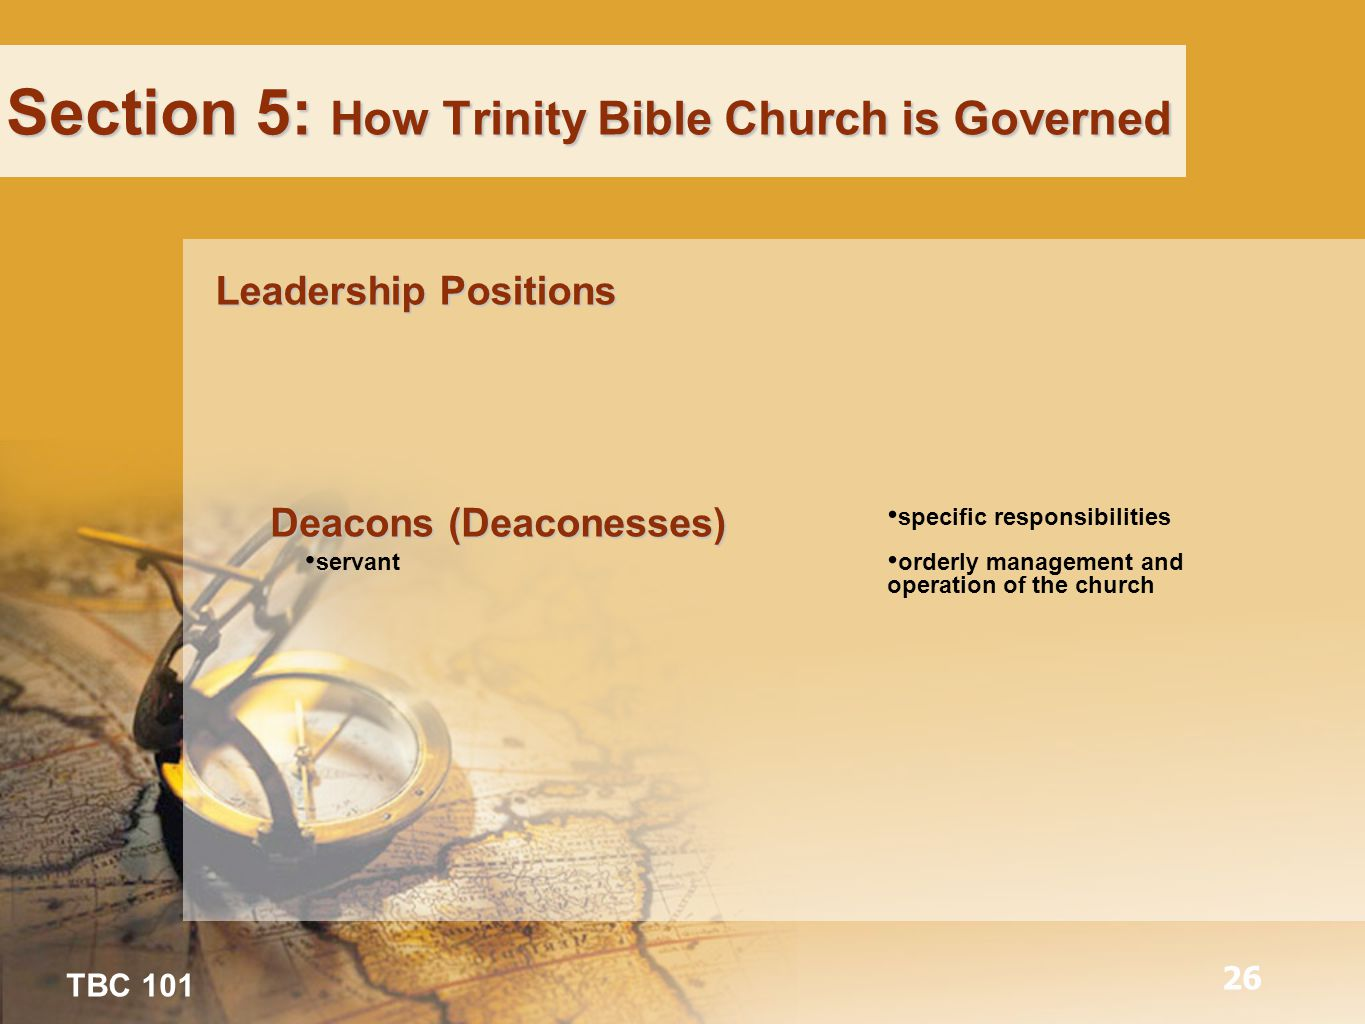 TBC 101 26 Section 5: How Trinity Bible Church is Governed Leadership Positions Deacons (Deaconesses) servant specific responsibilities orderly management and operation of the church